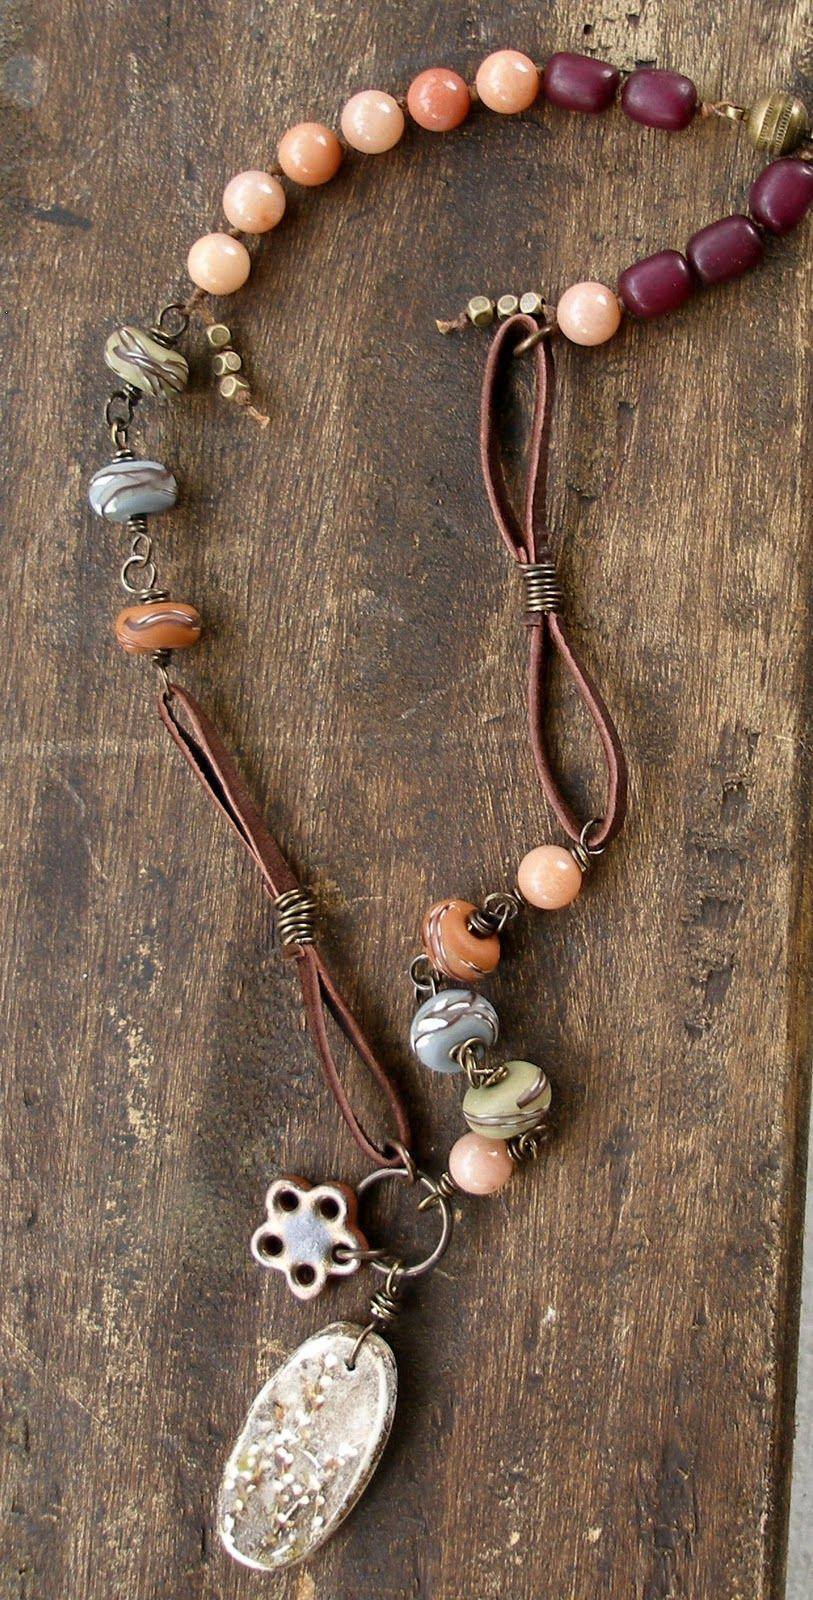 BROWN MULTISTRAND NECKLACE Handmade strings necklace One of a kind mother/'s gift original women gift Fall colors Brown-white-cocoa